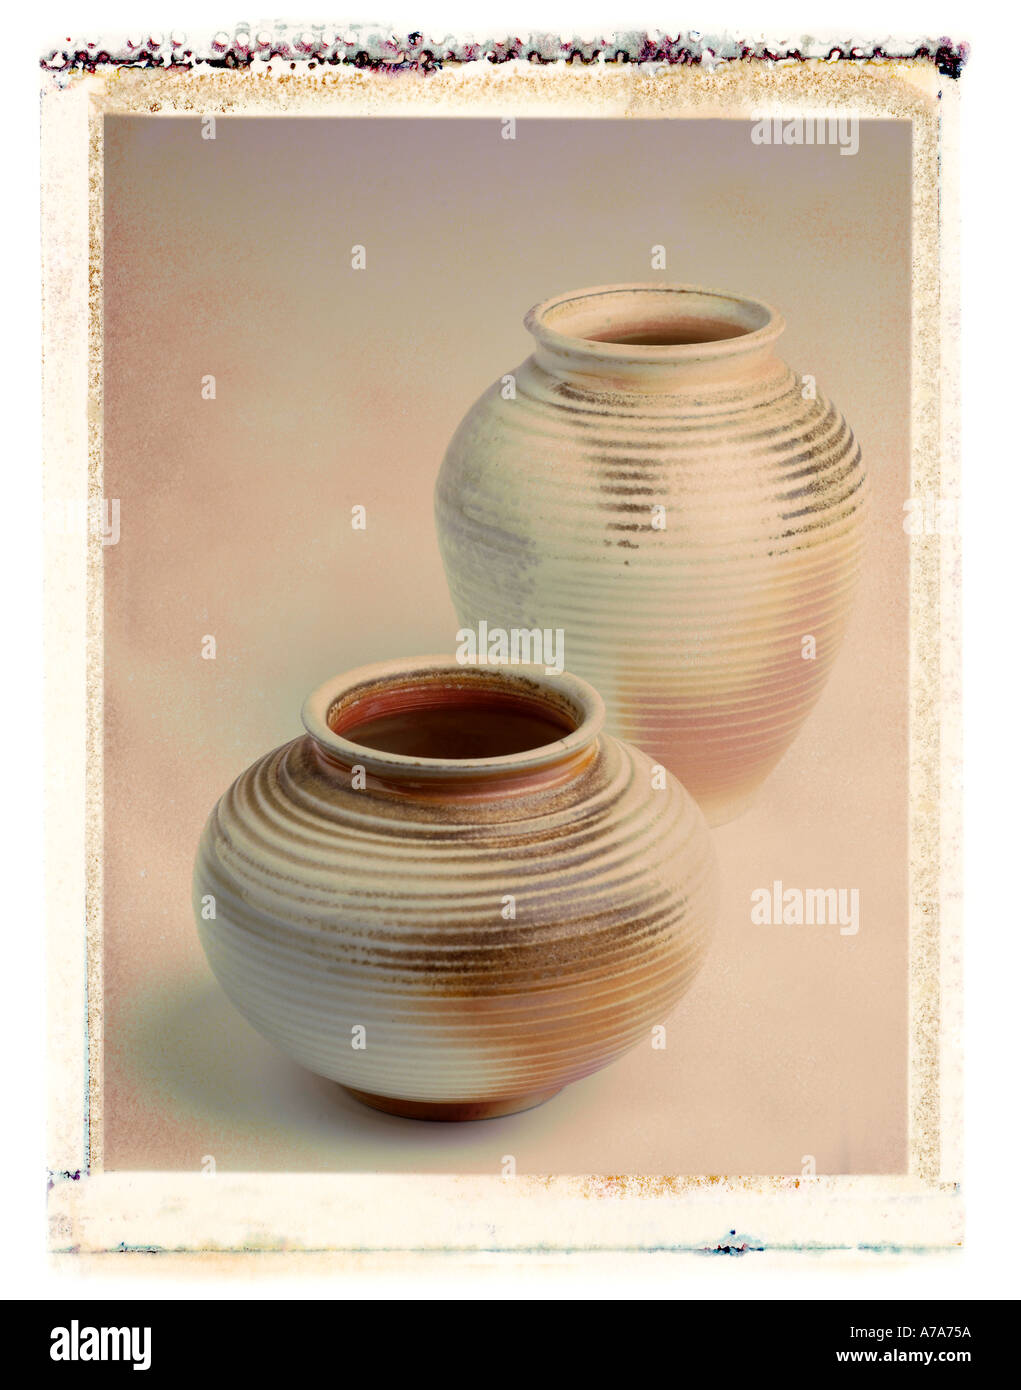 pottery - Stock Image